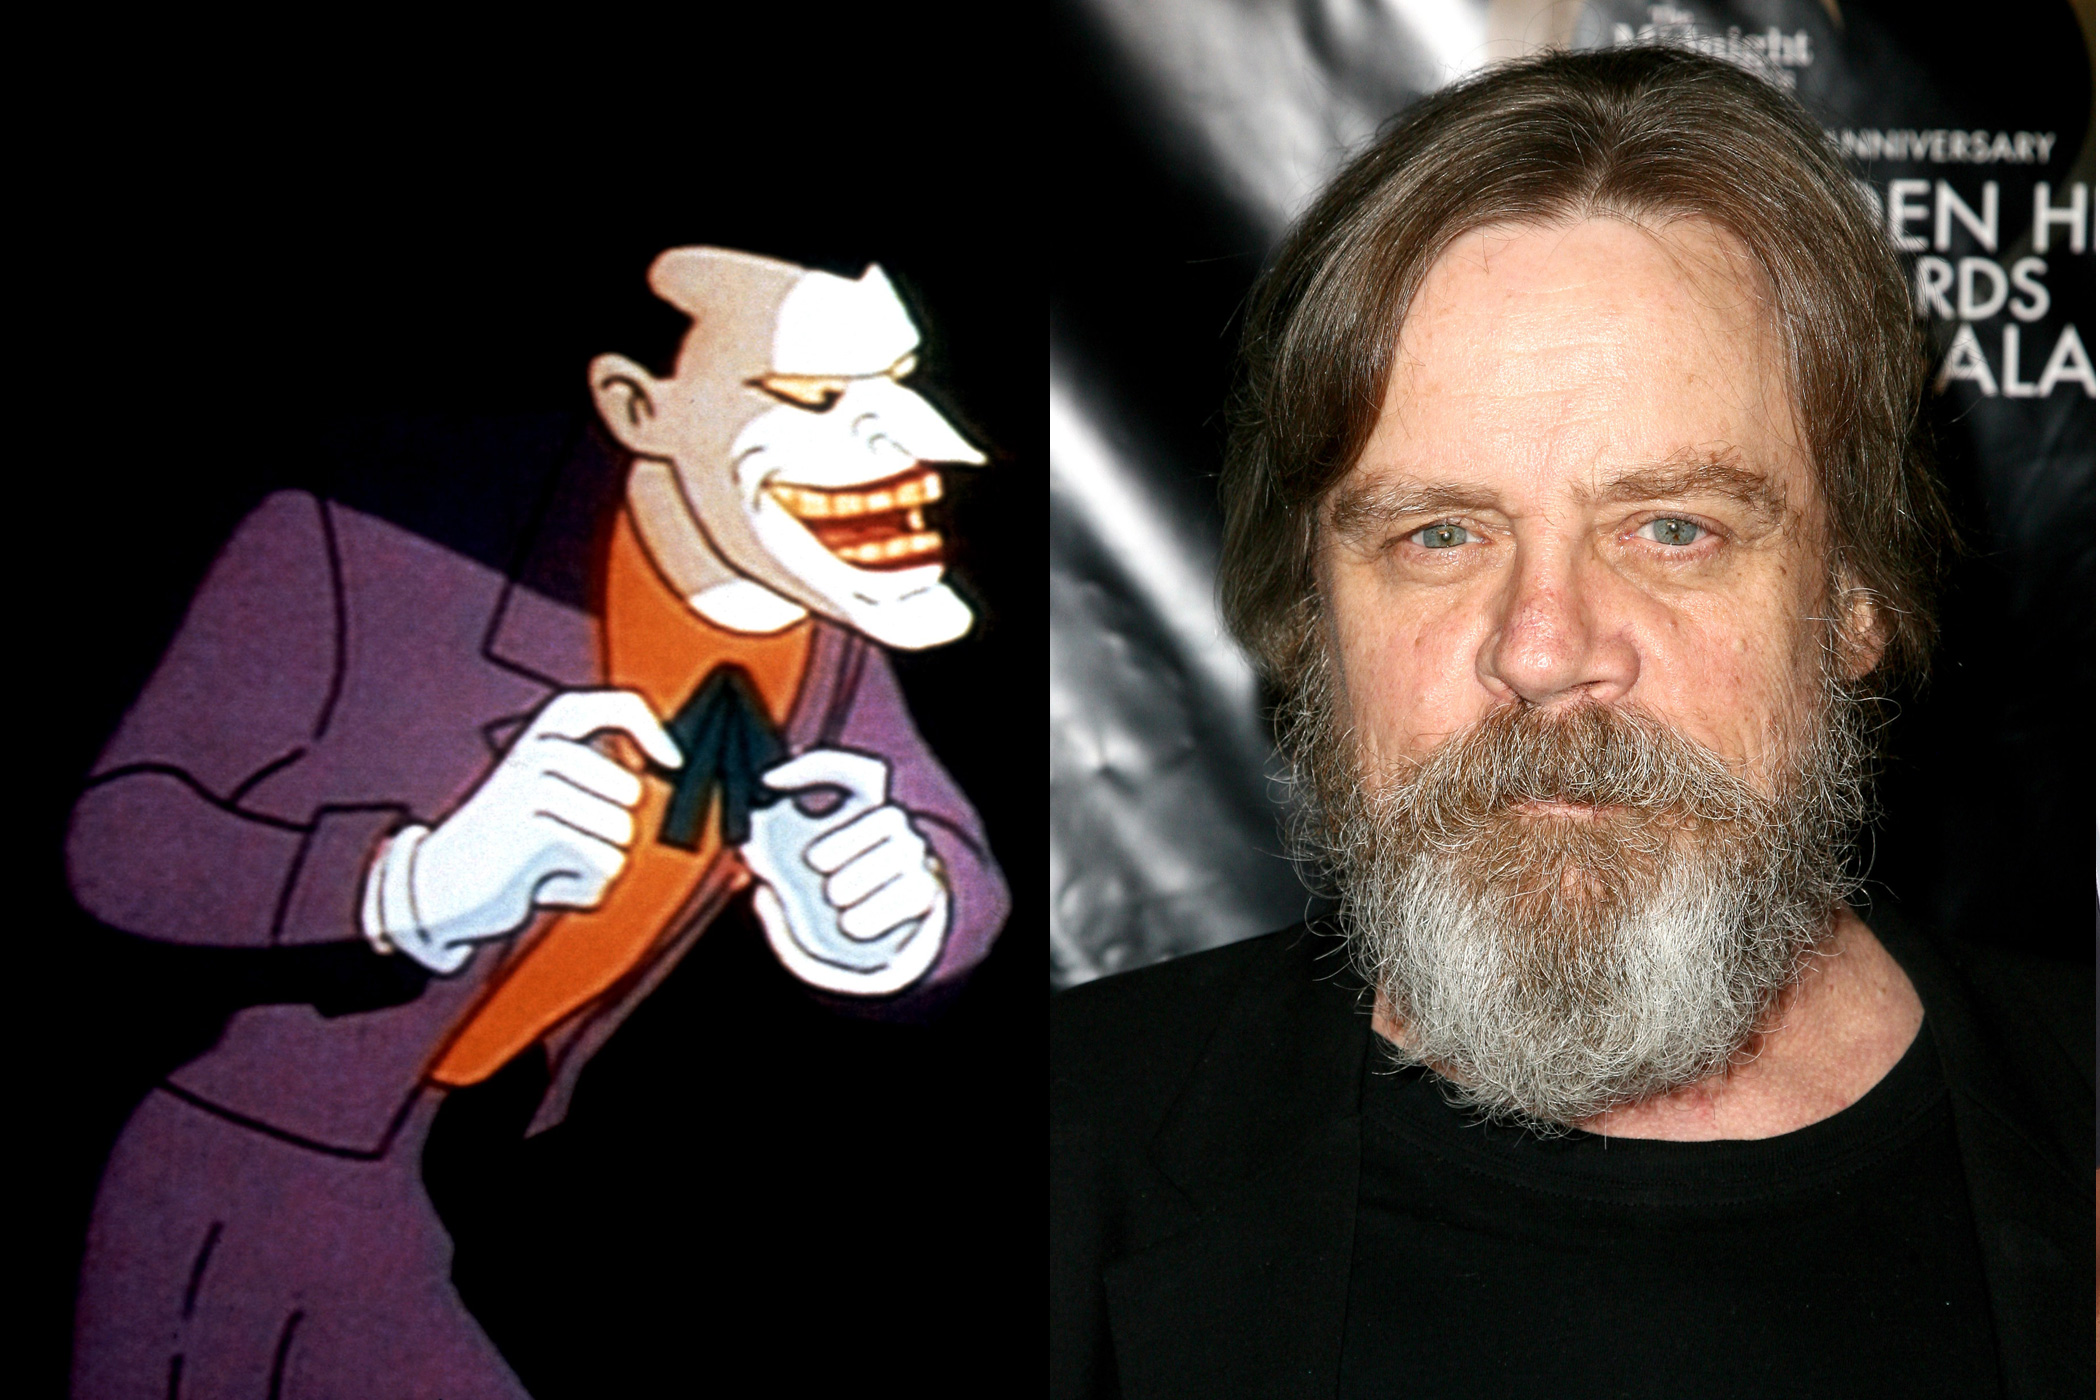 Mark Hamill has had an impressive second act following <i>Star Wars</i> as a prolific and celebrated voice actor giving life to characters such as the Joker in <i>Batman: The Animated Series</i> and Fire Lord Ozai in <i>Avatar: The Last Airbender</i>.